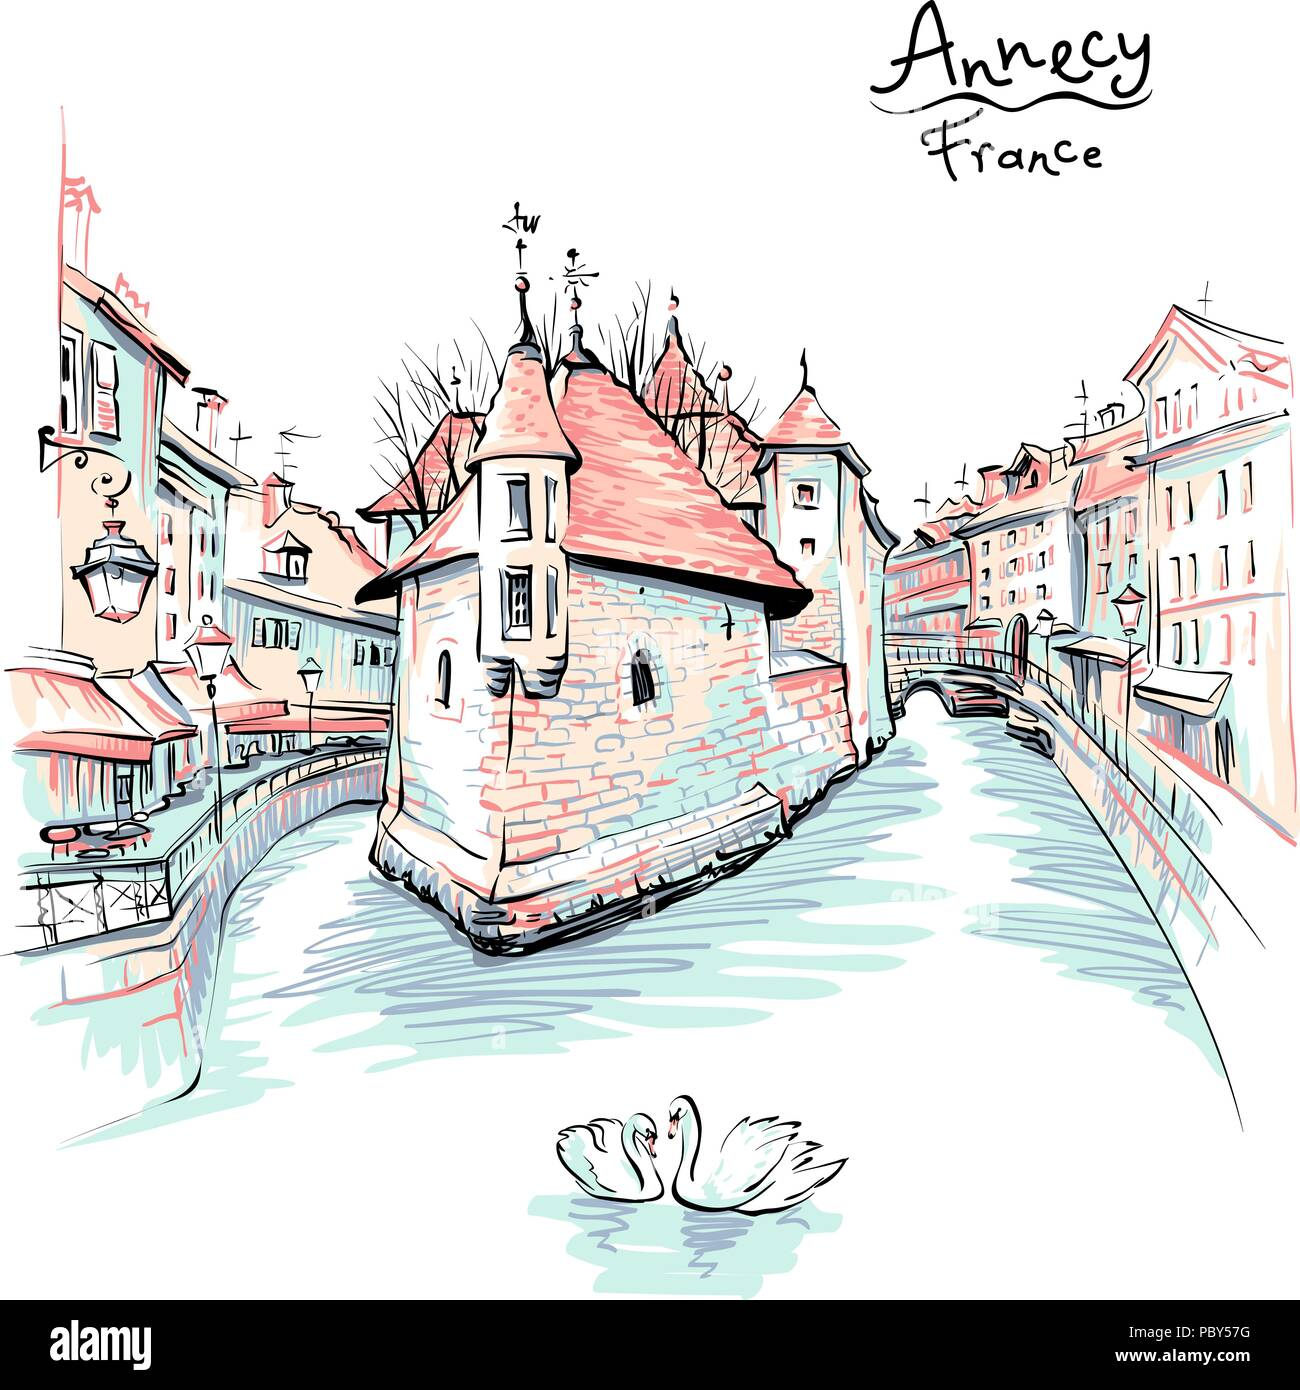 Annecy, Venice of the Alps, France. Stock Vector